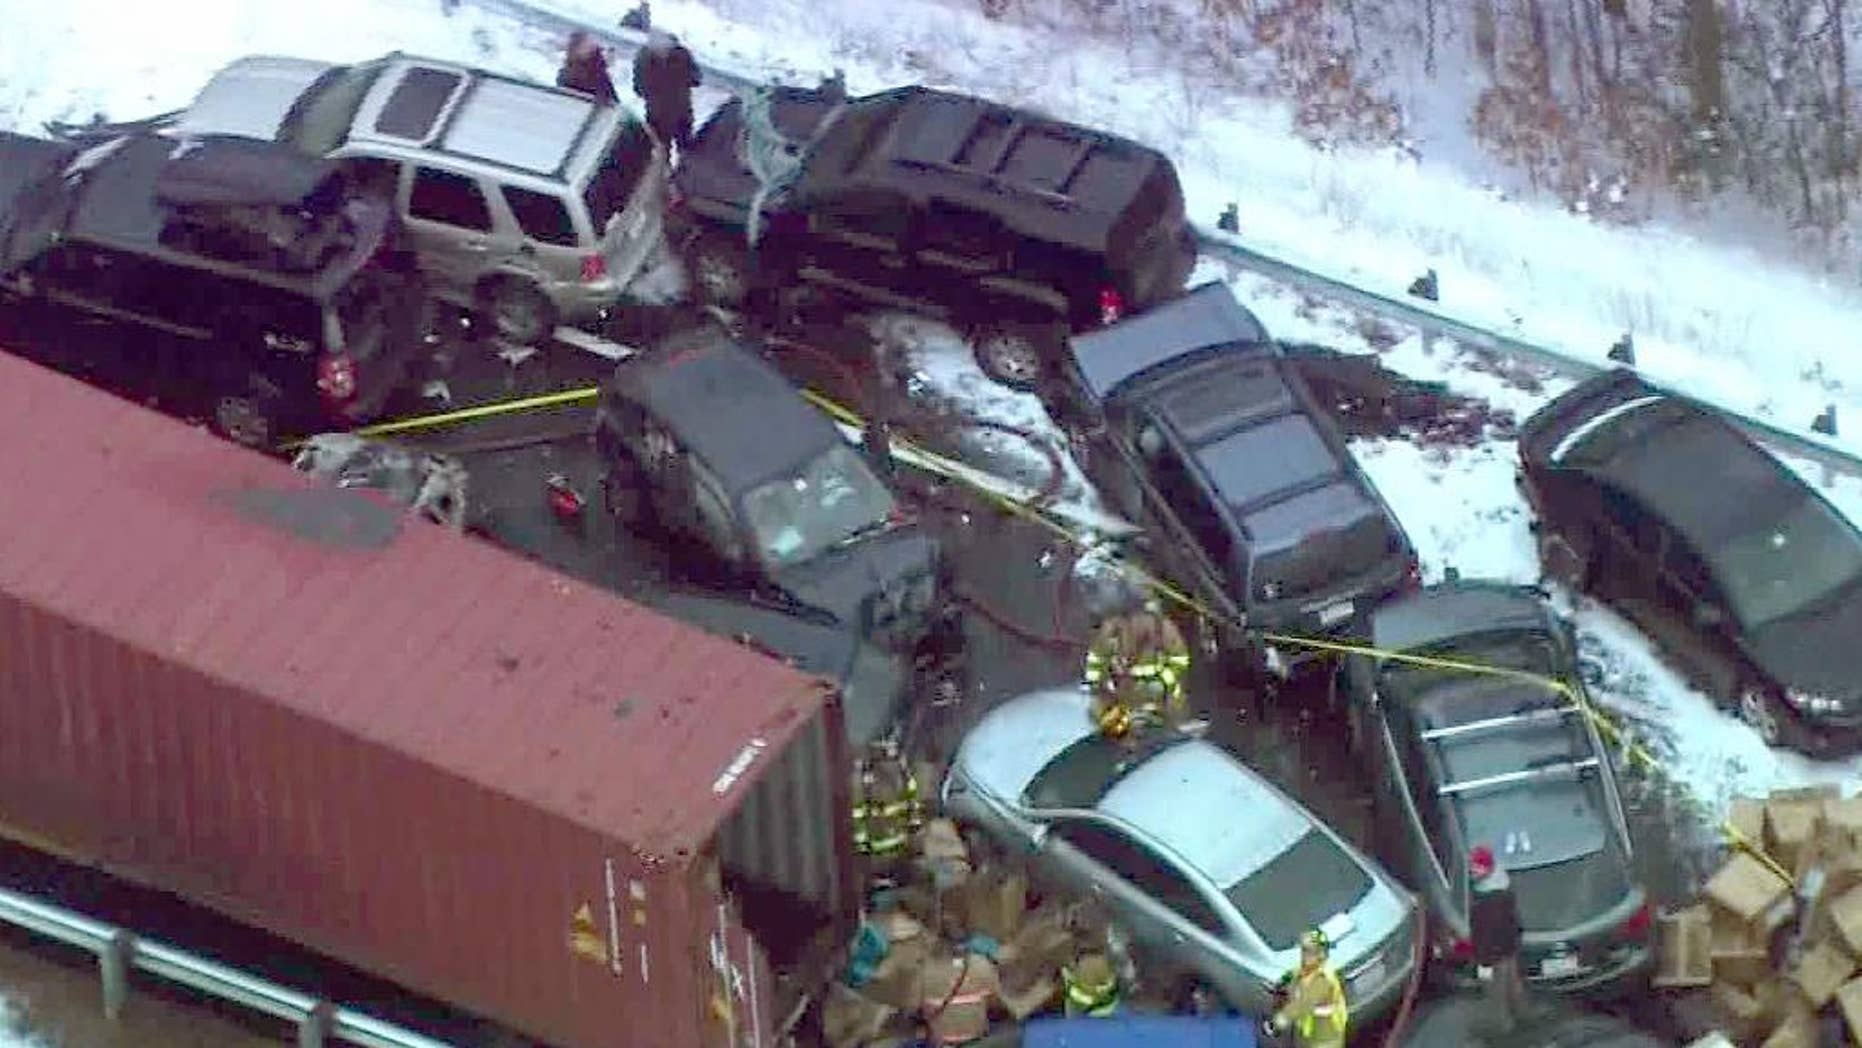 Snow squalls lead to 50- to 100-vehicle pileup on Interstate 93 in